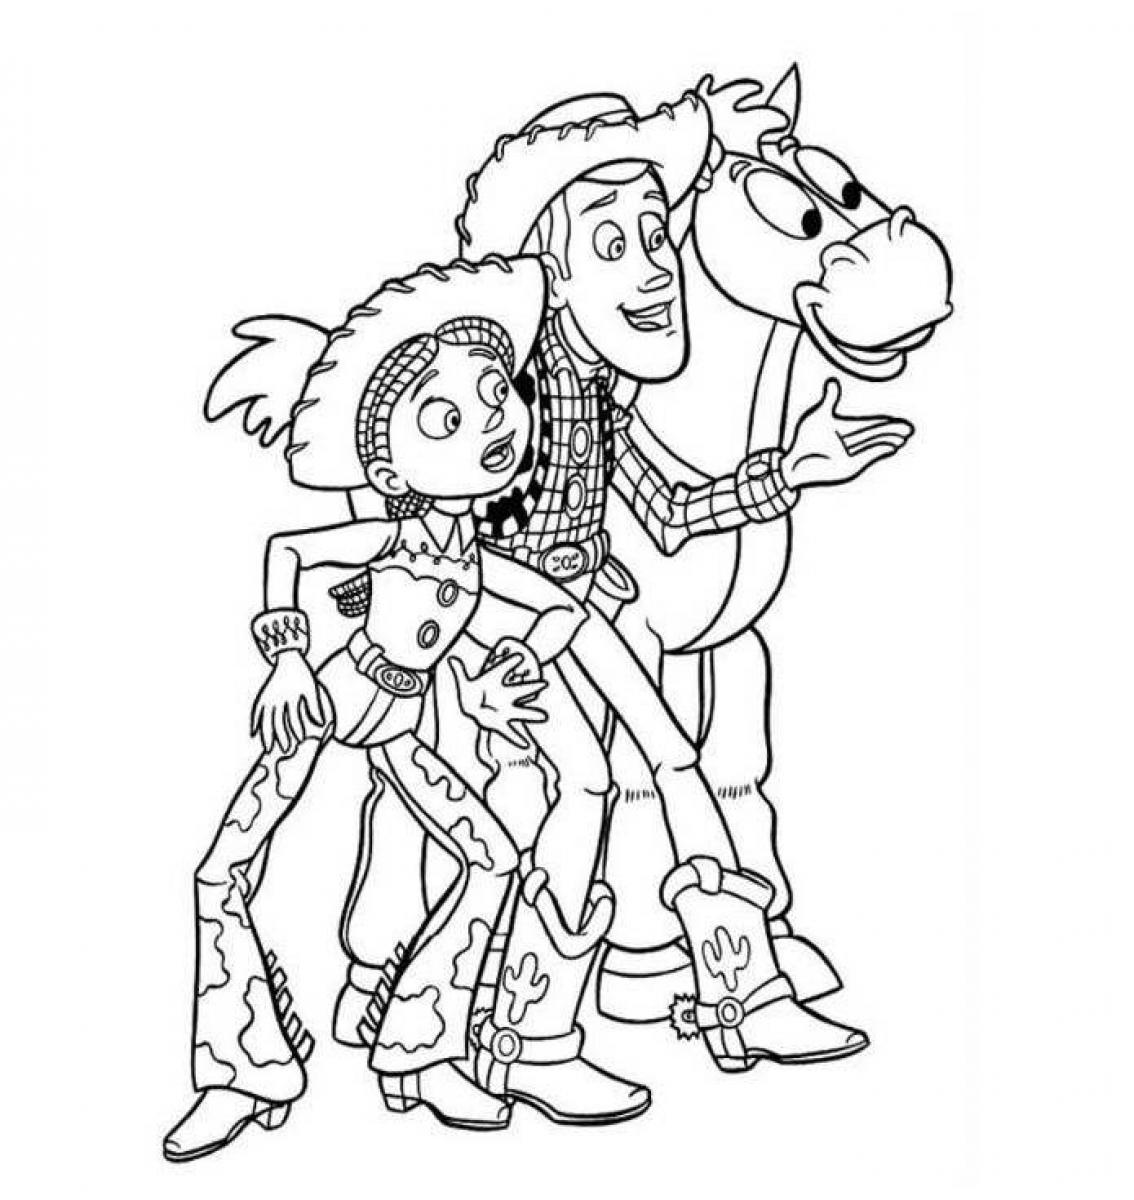 toy story woody coloring pages - desenhos do toy story para colorir